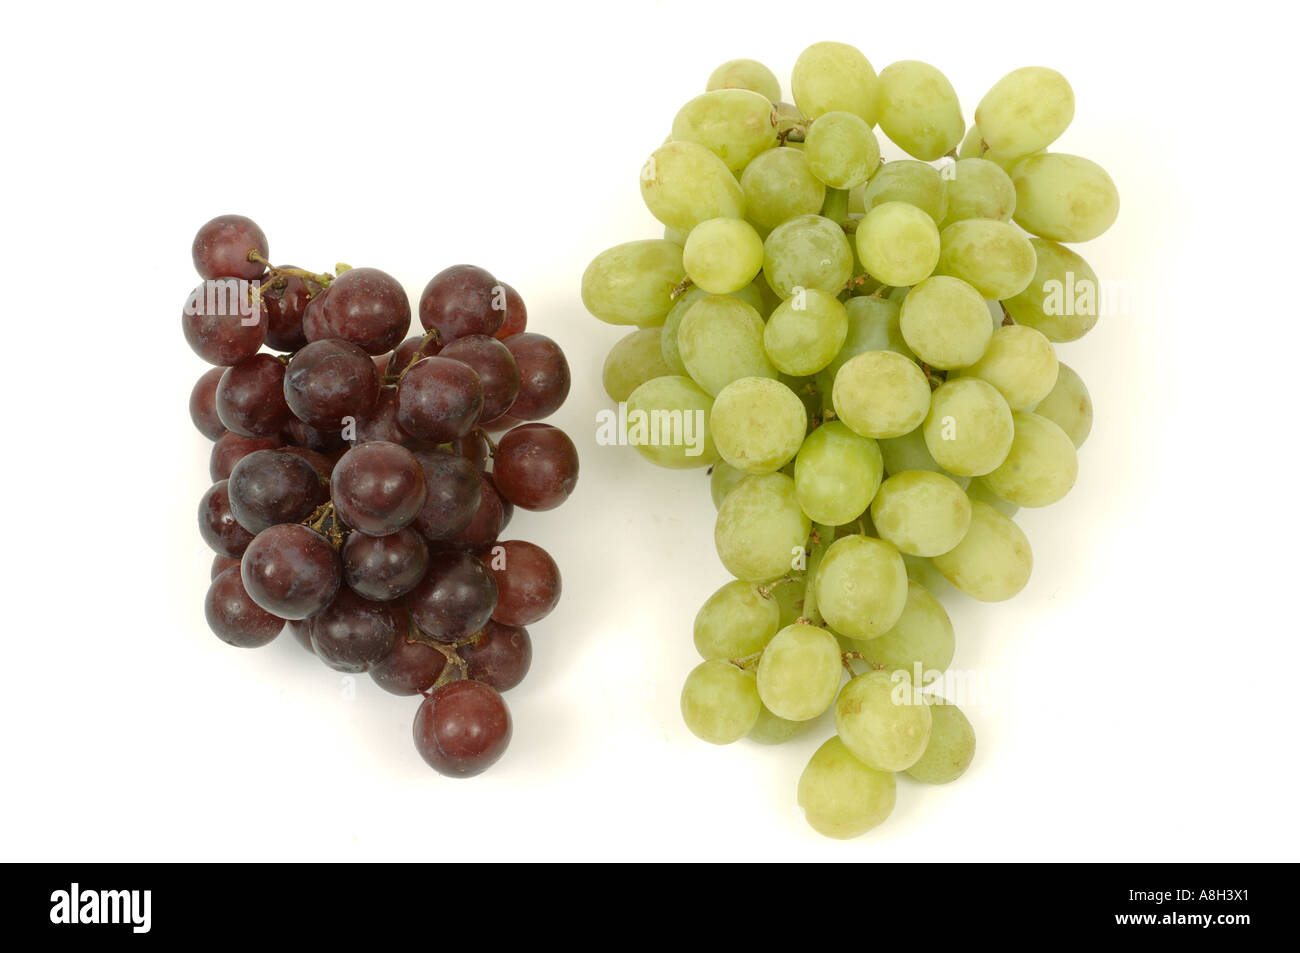 Red white grapes supermarket bought and in normal shop condition - Stock Image